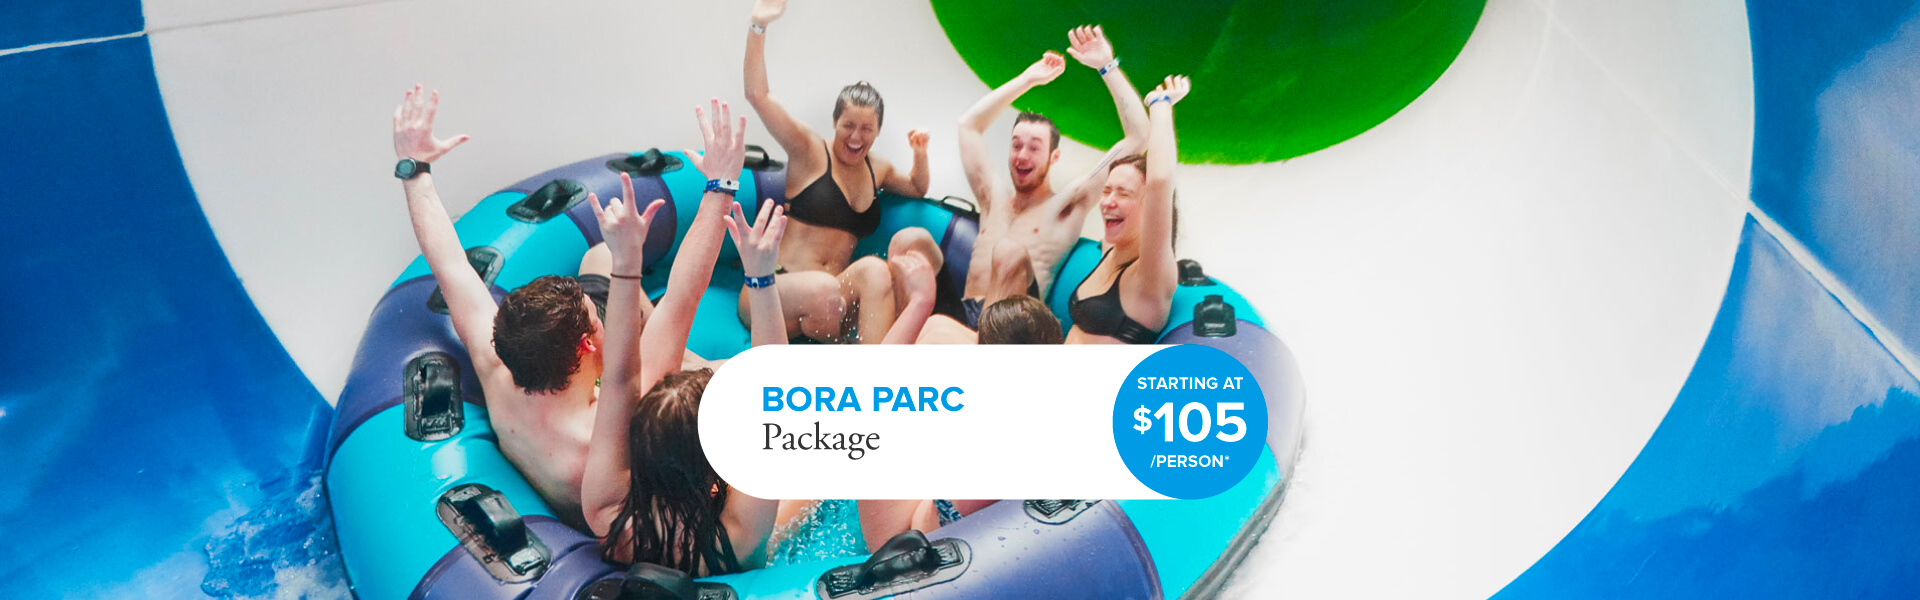 Great Time at Bora Parc